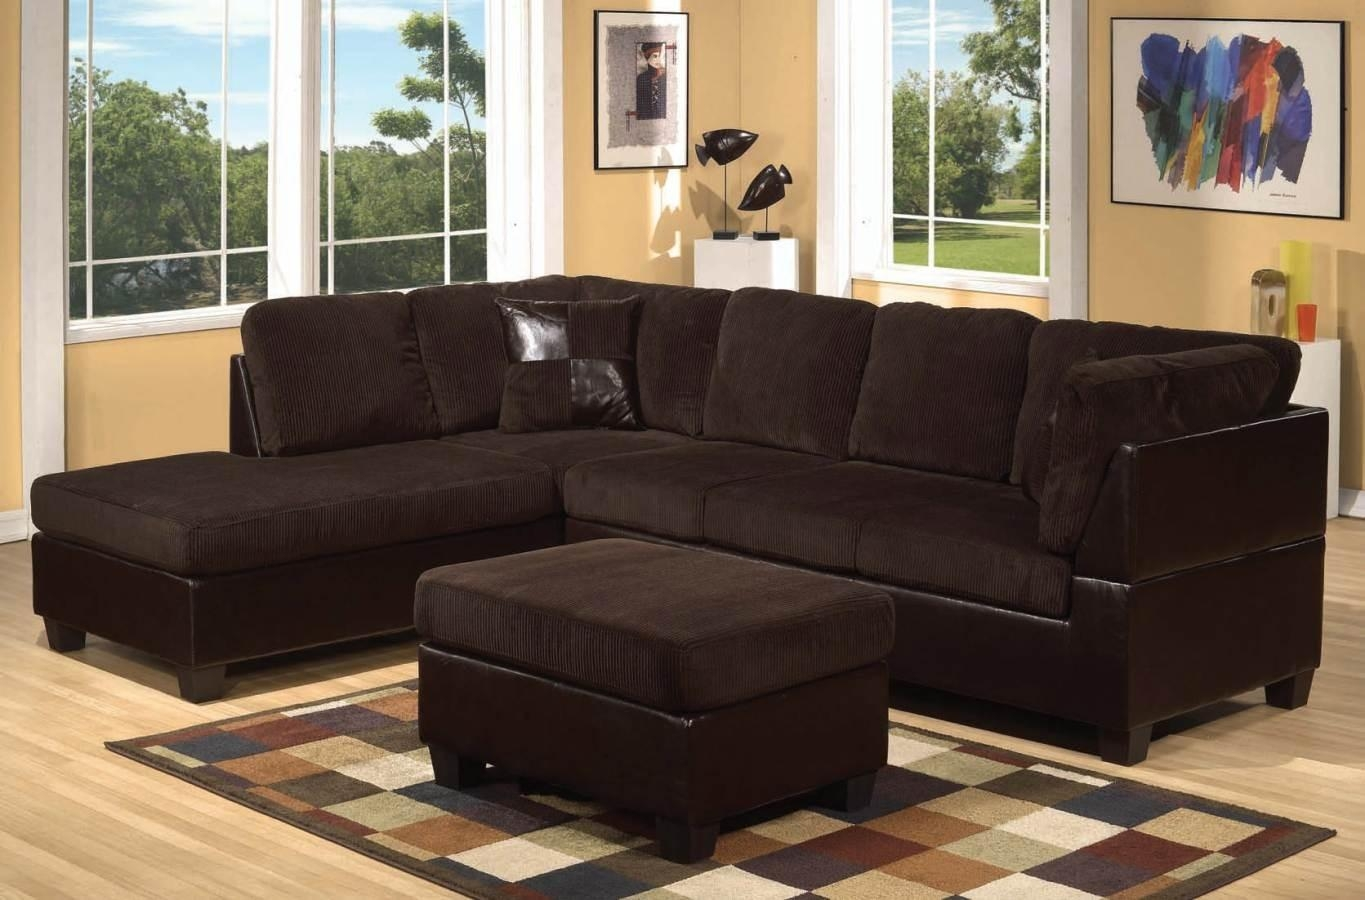 20 Best Collection of Brown Corduroy Sofas | Sofa Ideas